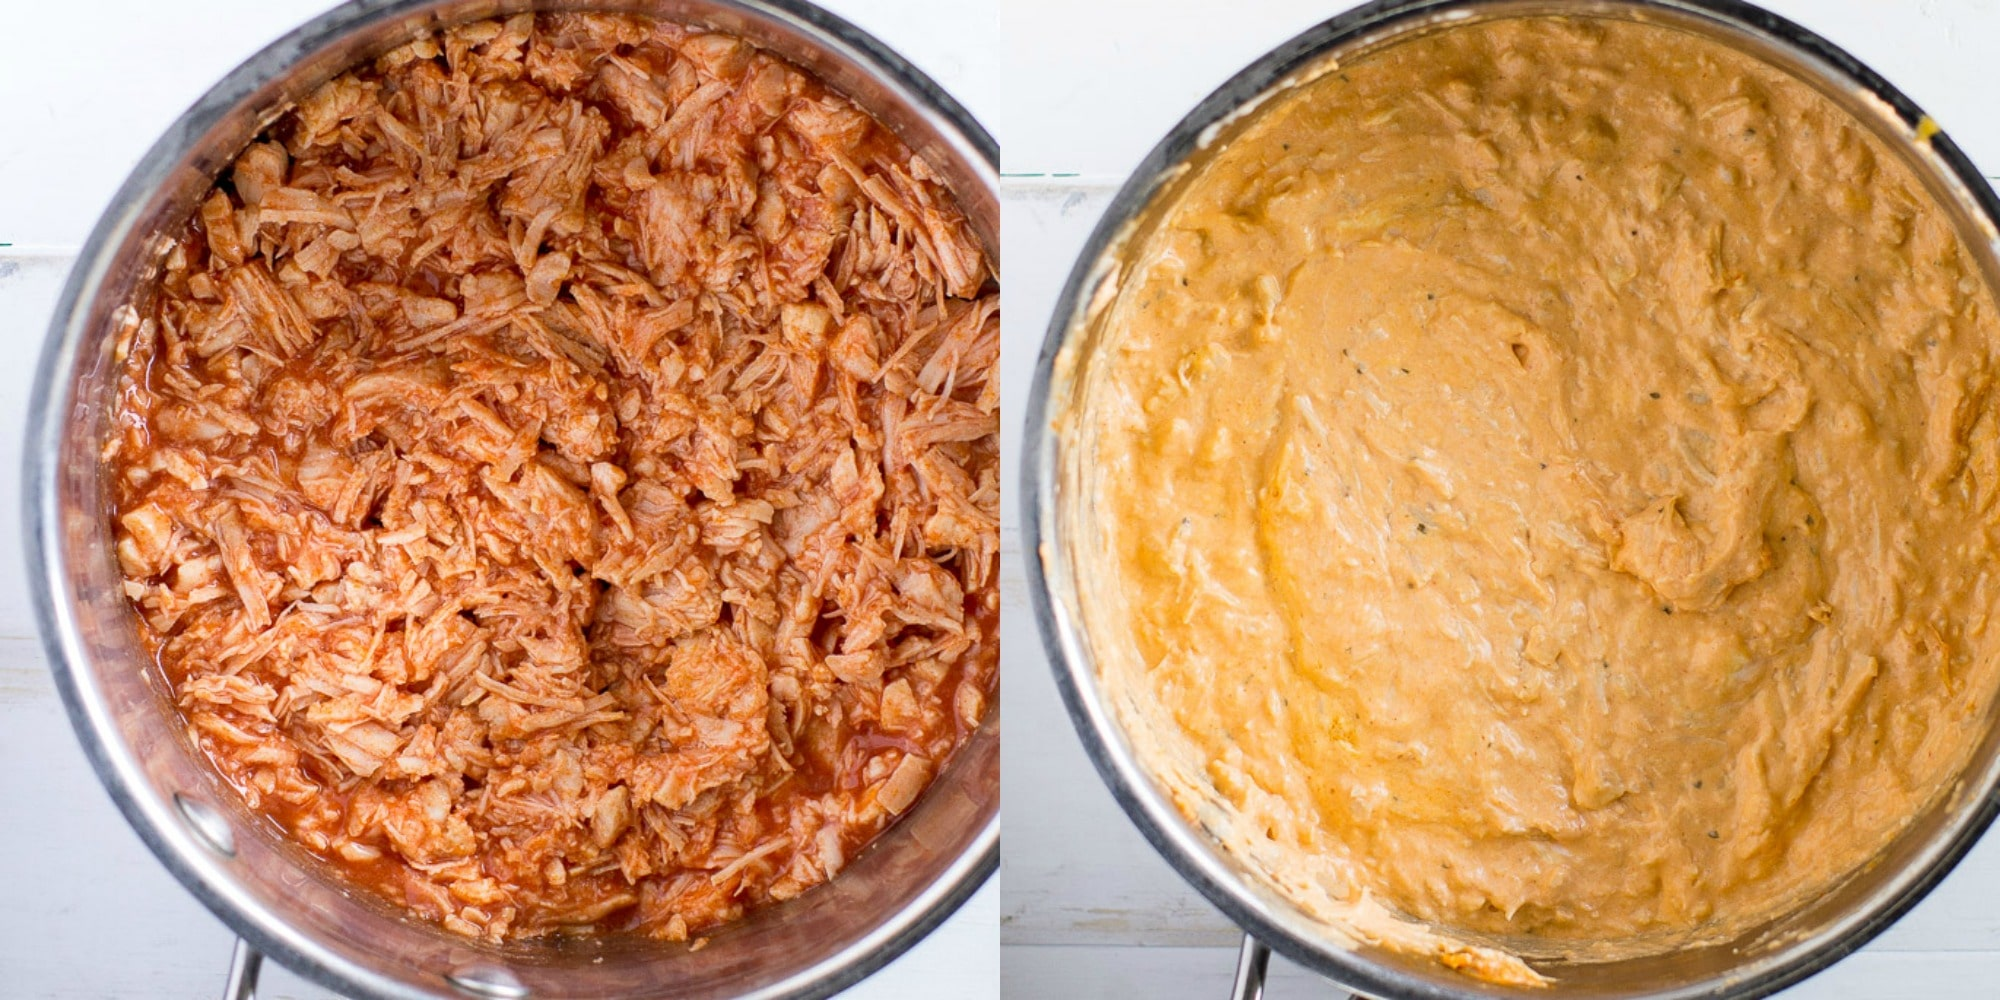 An easy recipe for Buffalo Chicken Dip. Make it on the stove top, in a crockpot, or even in your Instant Pot. Great for game days and parties all year long, serve this dip with cold celery sticks or crunchy Chicken crackers.